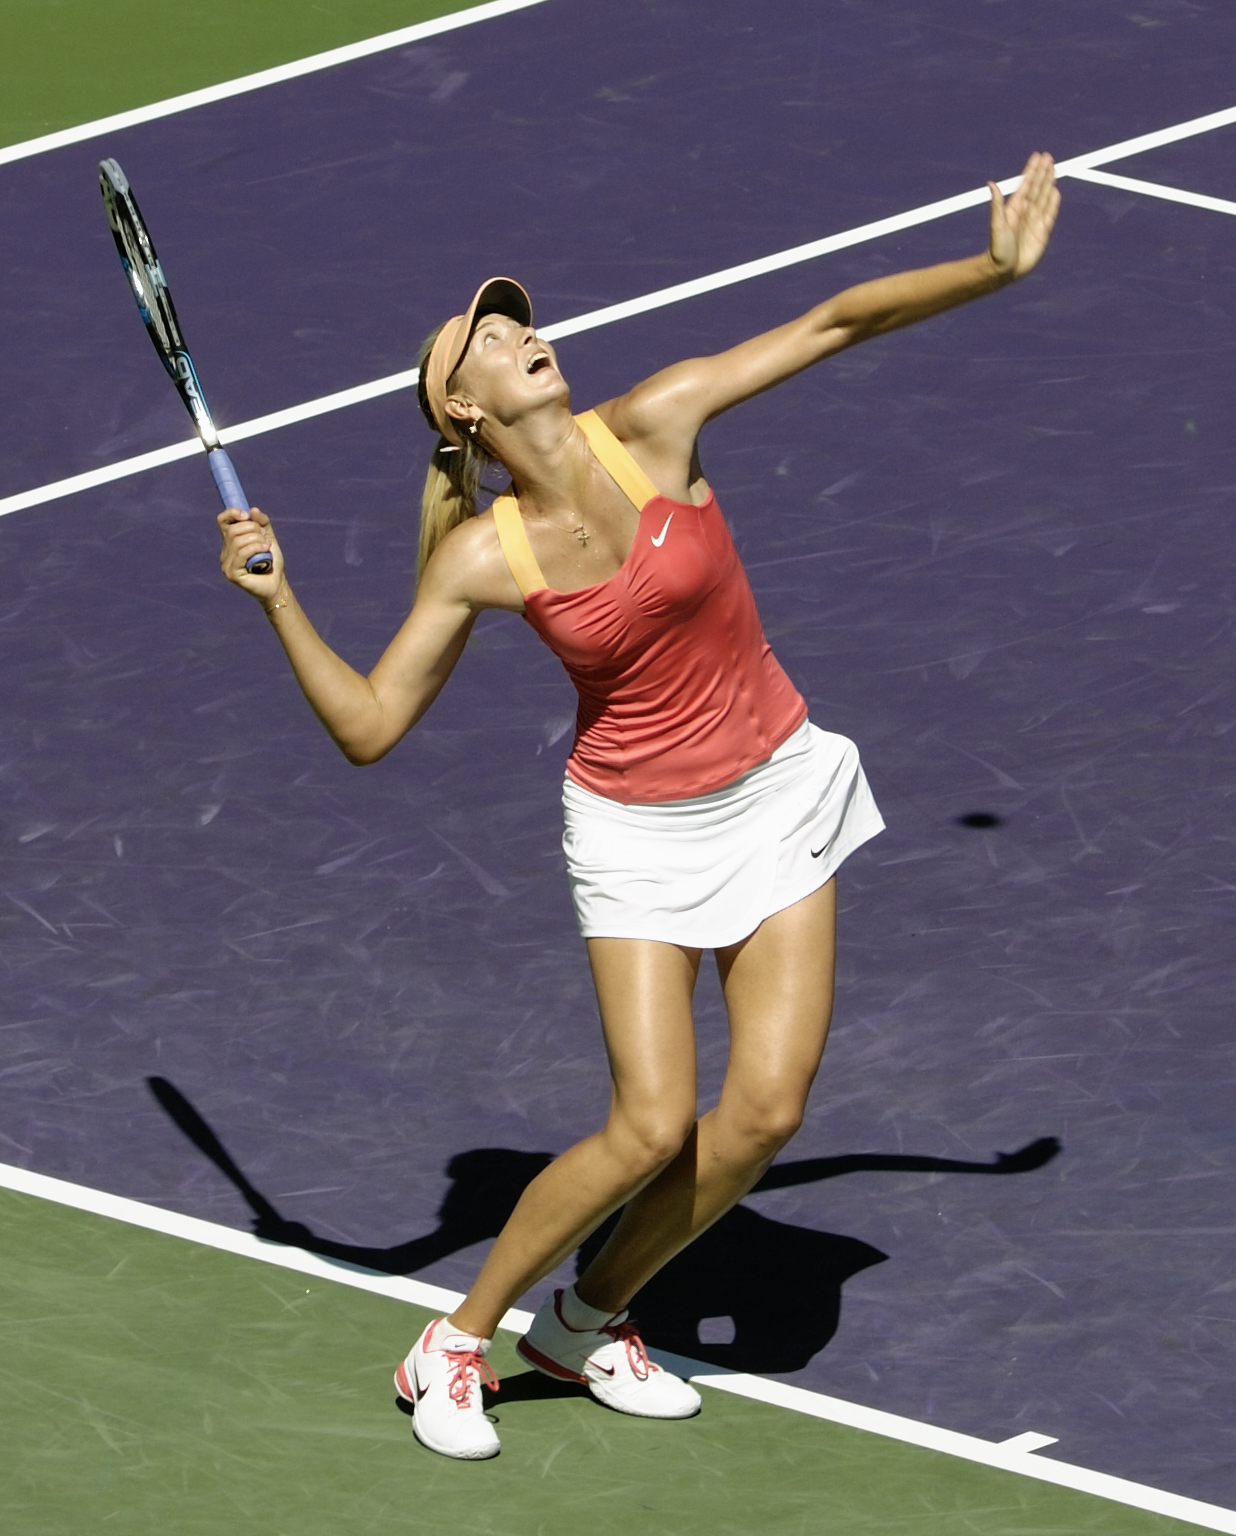 https://upload.wikimedia.org/wikipedia/commons/3/32/Maria_Sharapova_at_Sony_Ericsson_Open_Tennis,_2012.jpg